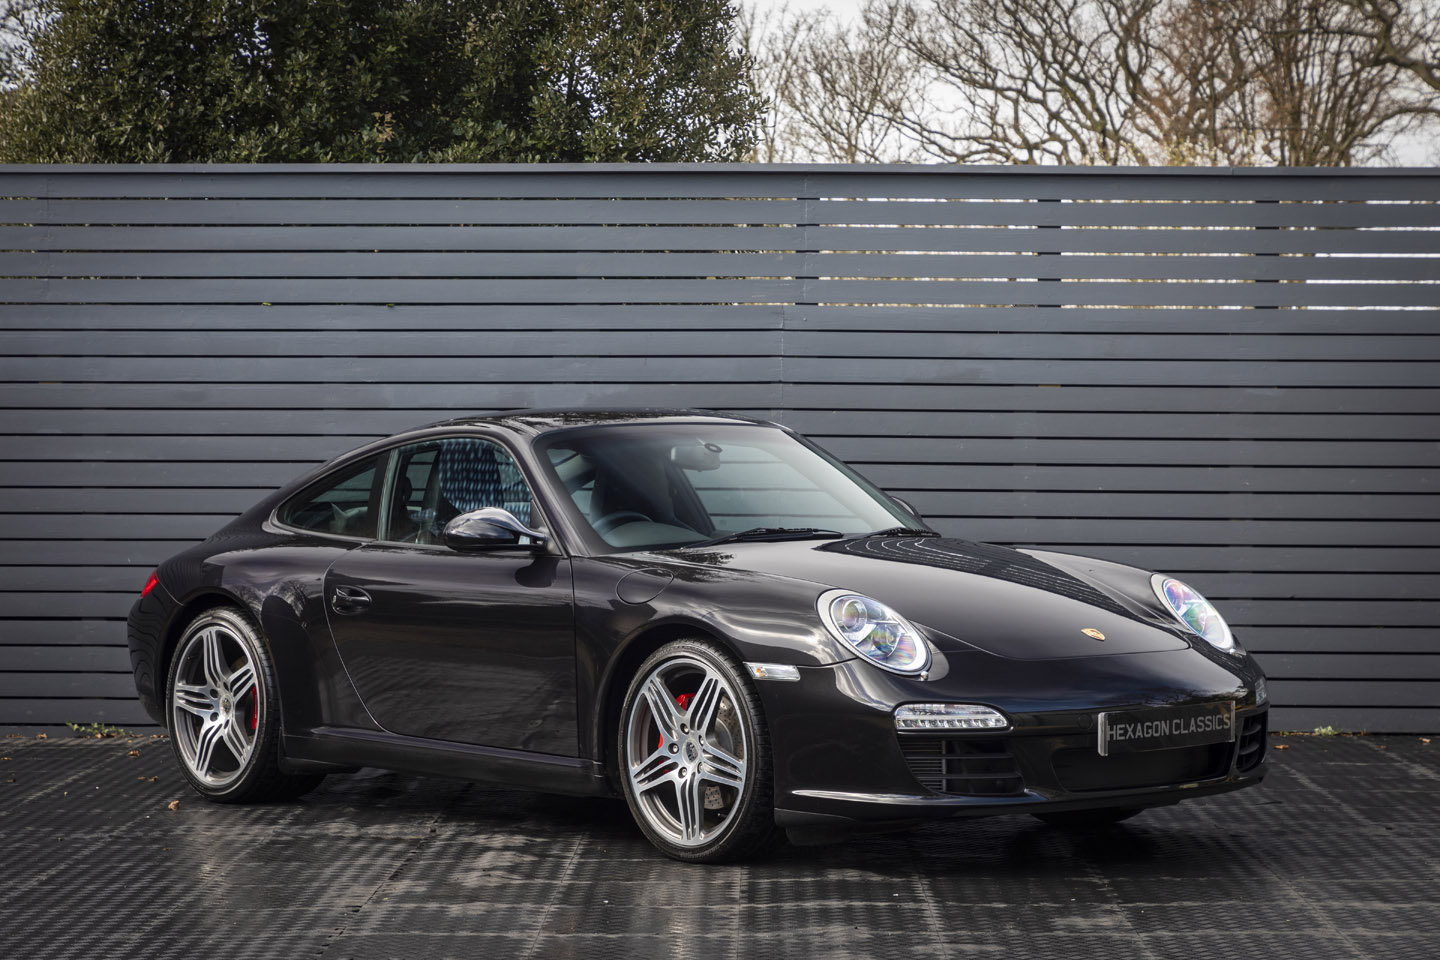 2009 PORSCHE 911 (997) CARRERA 2S COUPE GEN II,  MANUAL SOLD (picture 1 of 6)